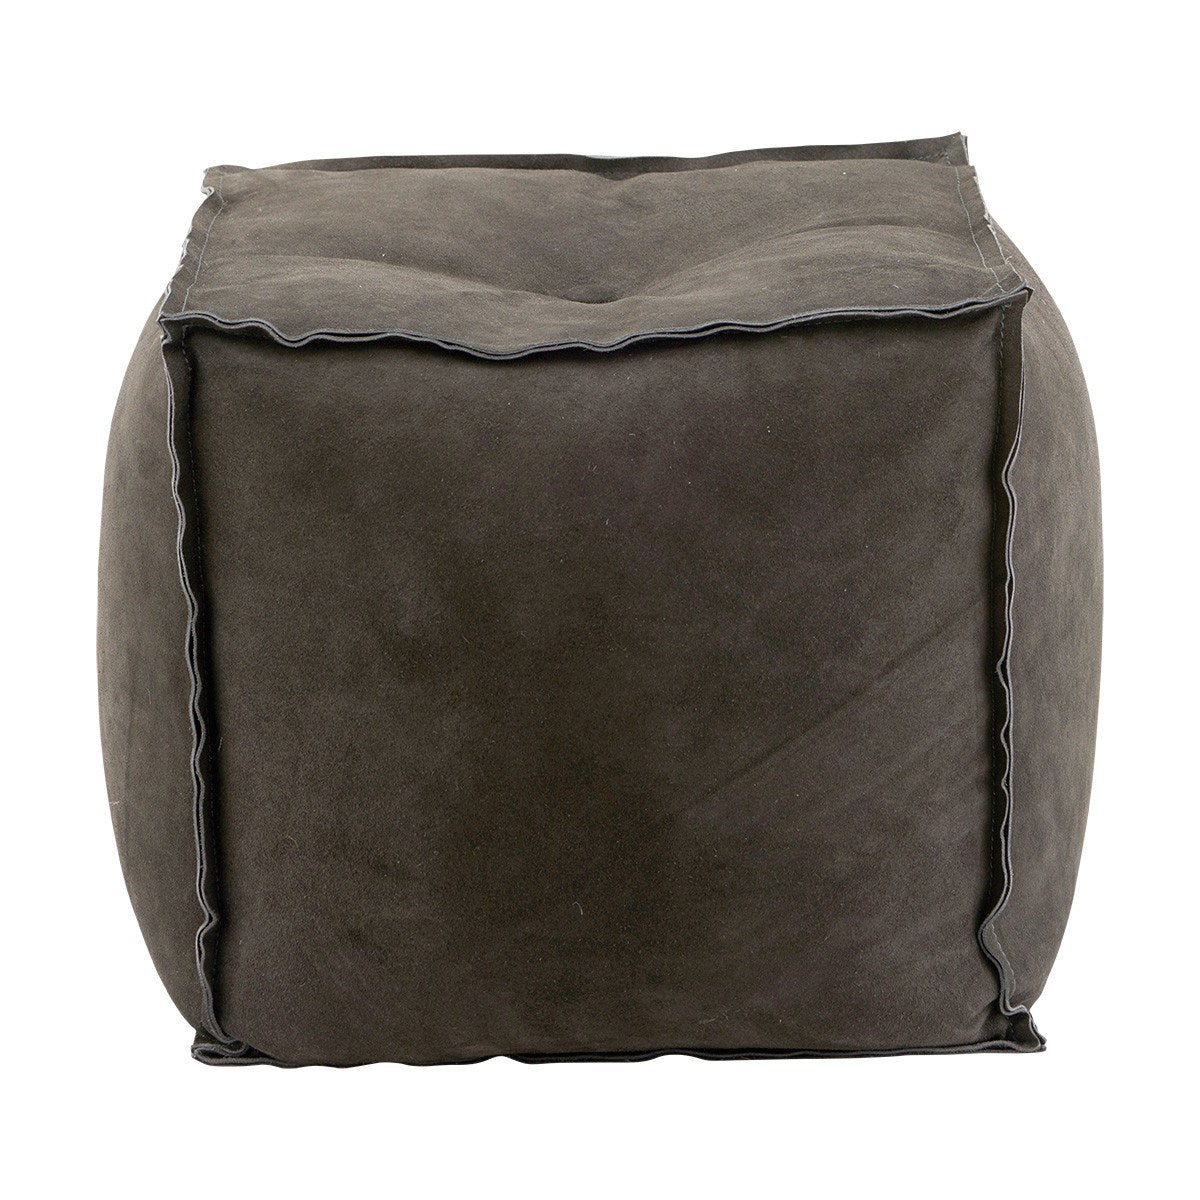 Image of   Puf Suede brun fra House Doctor